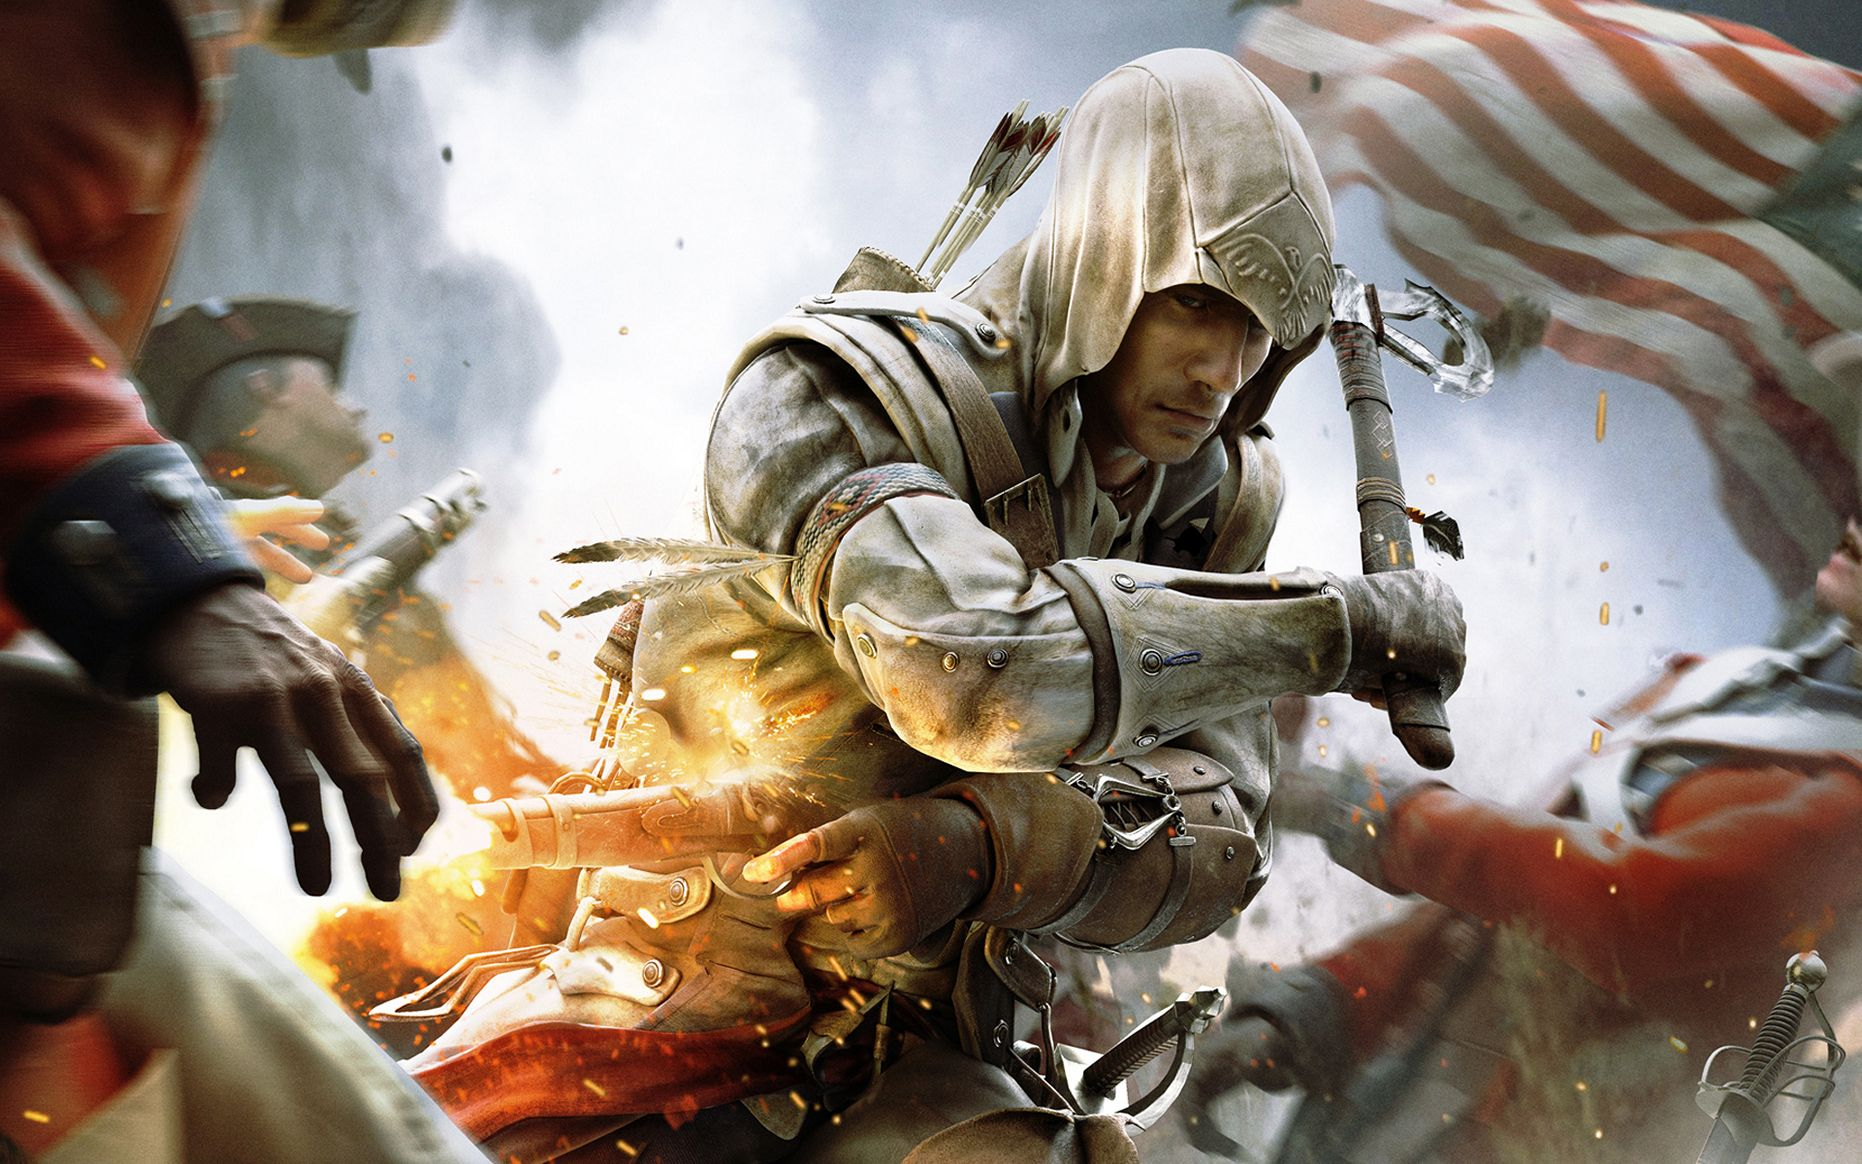 Assassins Creed Wallpaper Hd Is Cool Wallpapers Assassin S Creed Wallpaper Assassin S Creed Hd Assassins Creed Anime